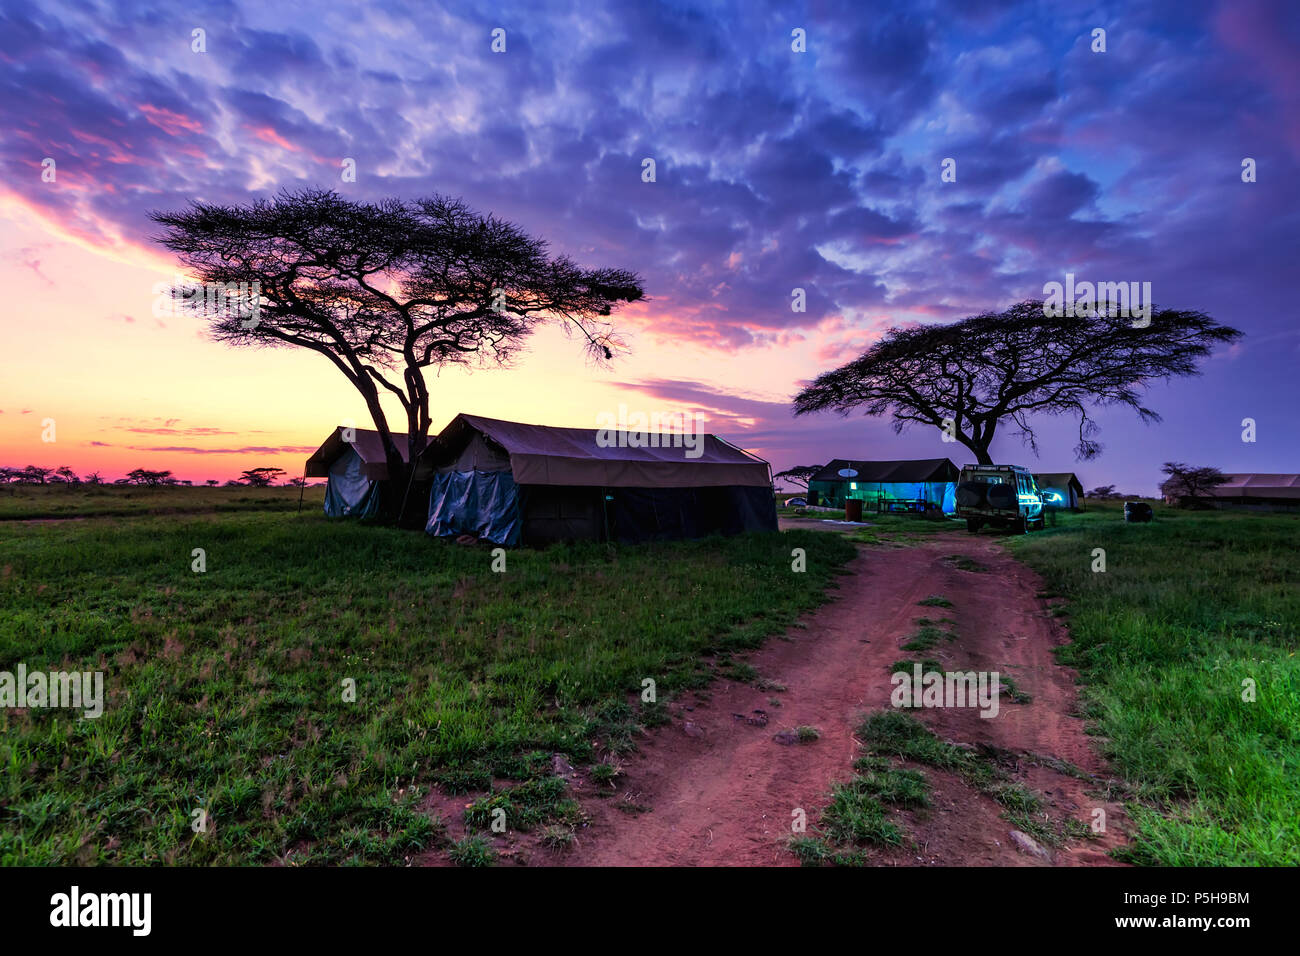 Expedition overnight in tents in savanna camp Stock Photo